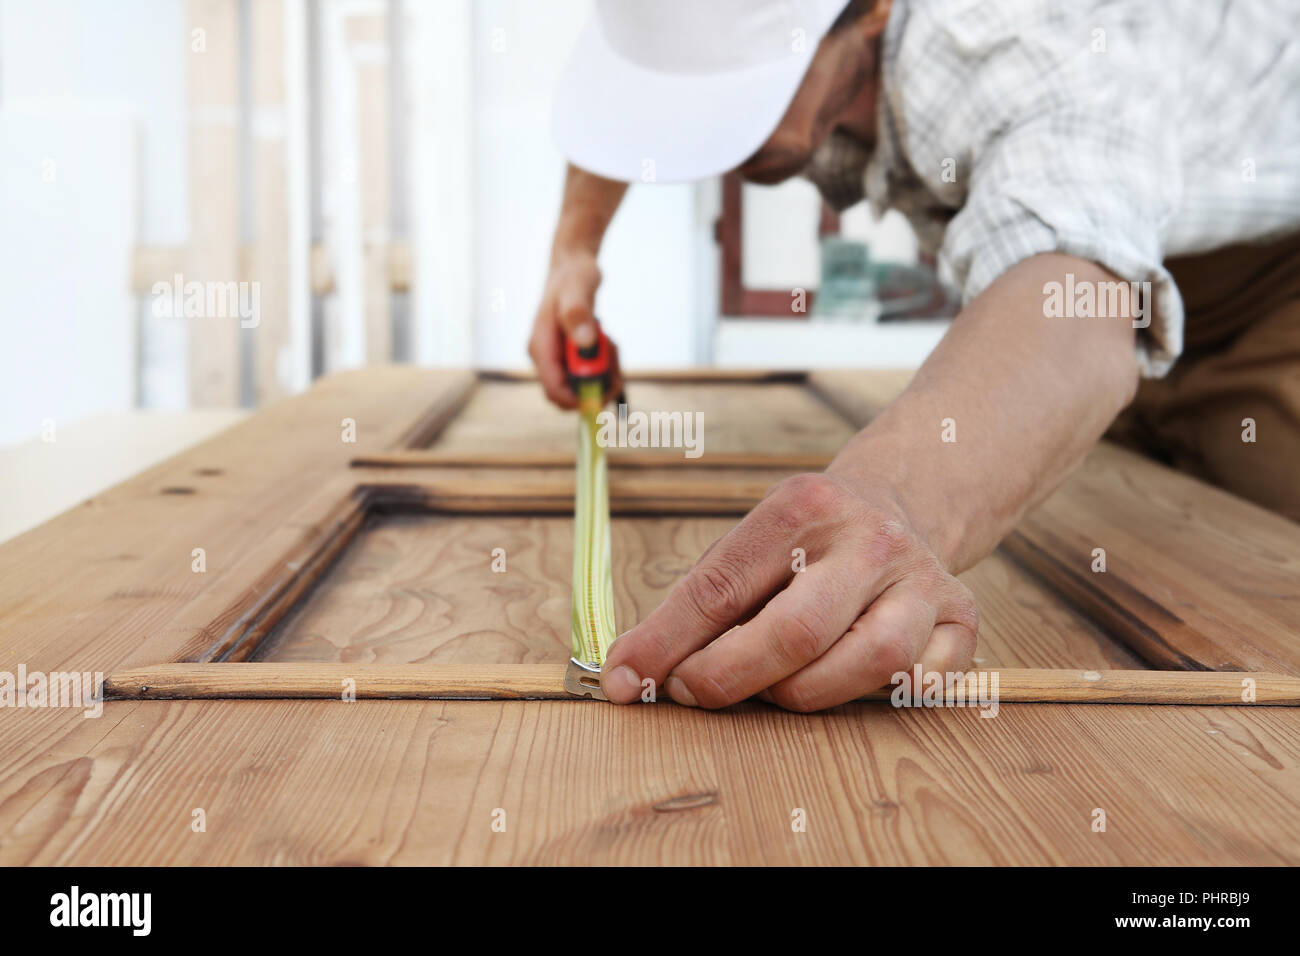 carpenter work the wood, measuring with meter tape a wooden vintage door - Stock Image